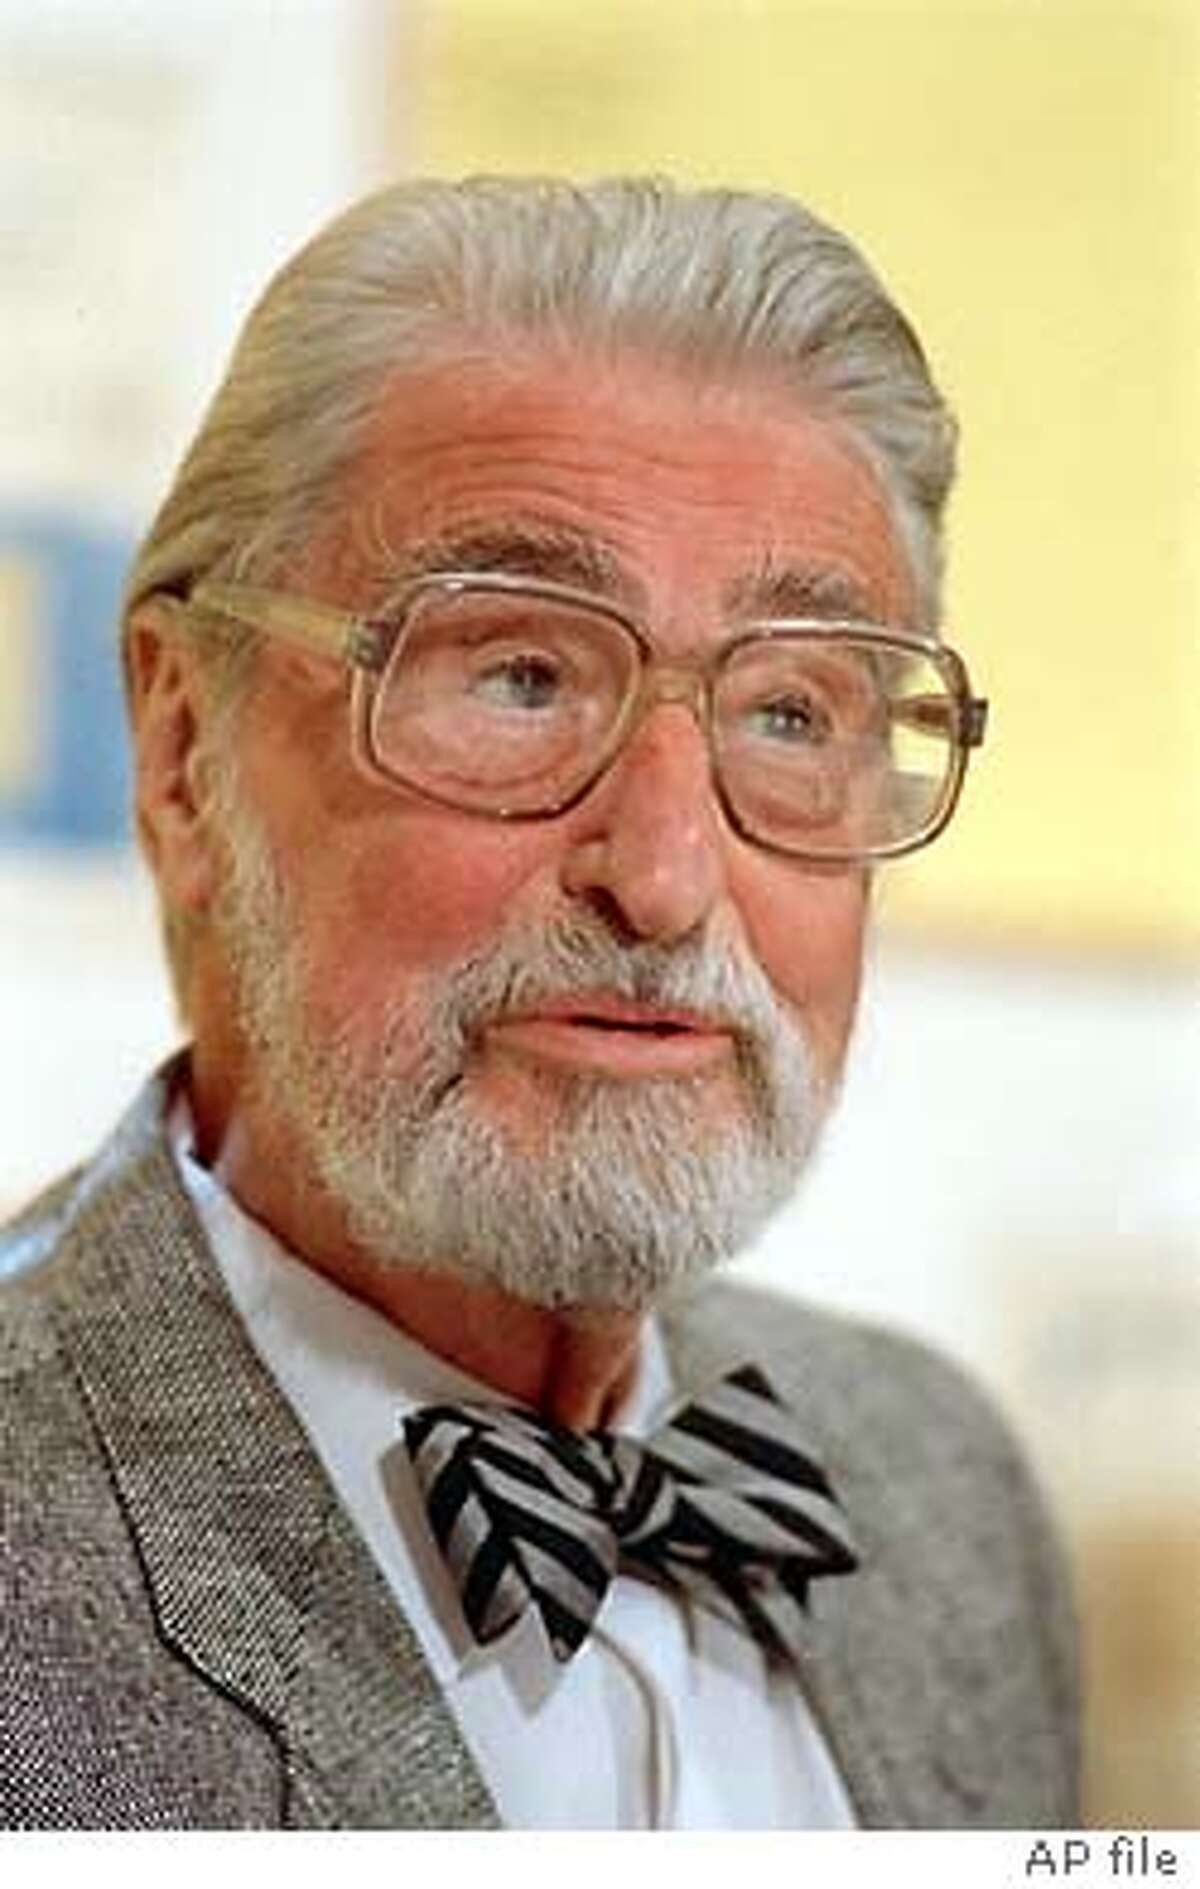 ** ADVANCE FOR WEEKEND, FEB. 26-29 **FILE**The late American author, artist and publisher Theodor Geisel, known by his pen name Dr. Seuss, speaks in Dallas, Texas, on April 3, 1987. The 100th anniversary of Geisel's birth is March 2, 2004, nearly 13 years after his death. (AP Photo) Theodor Geisel with two taxidermy creations, Sea Turtle and The Goo Goo Eyed Tasmanian Wolghast.